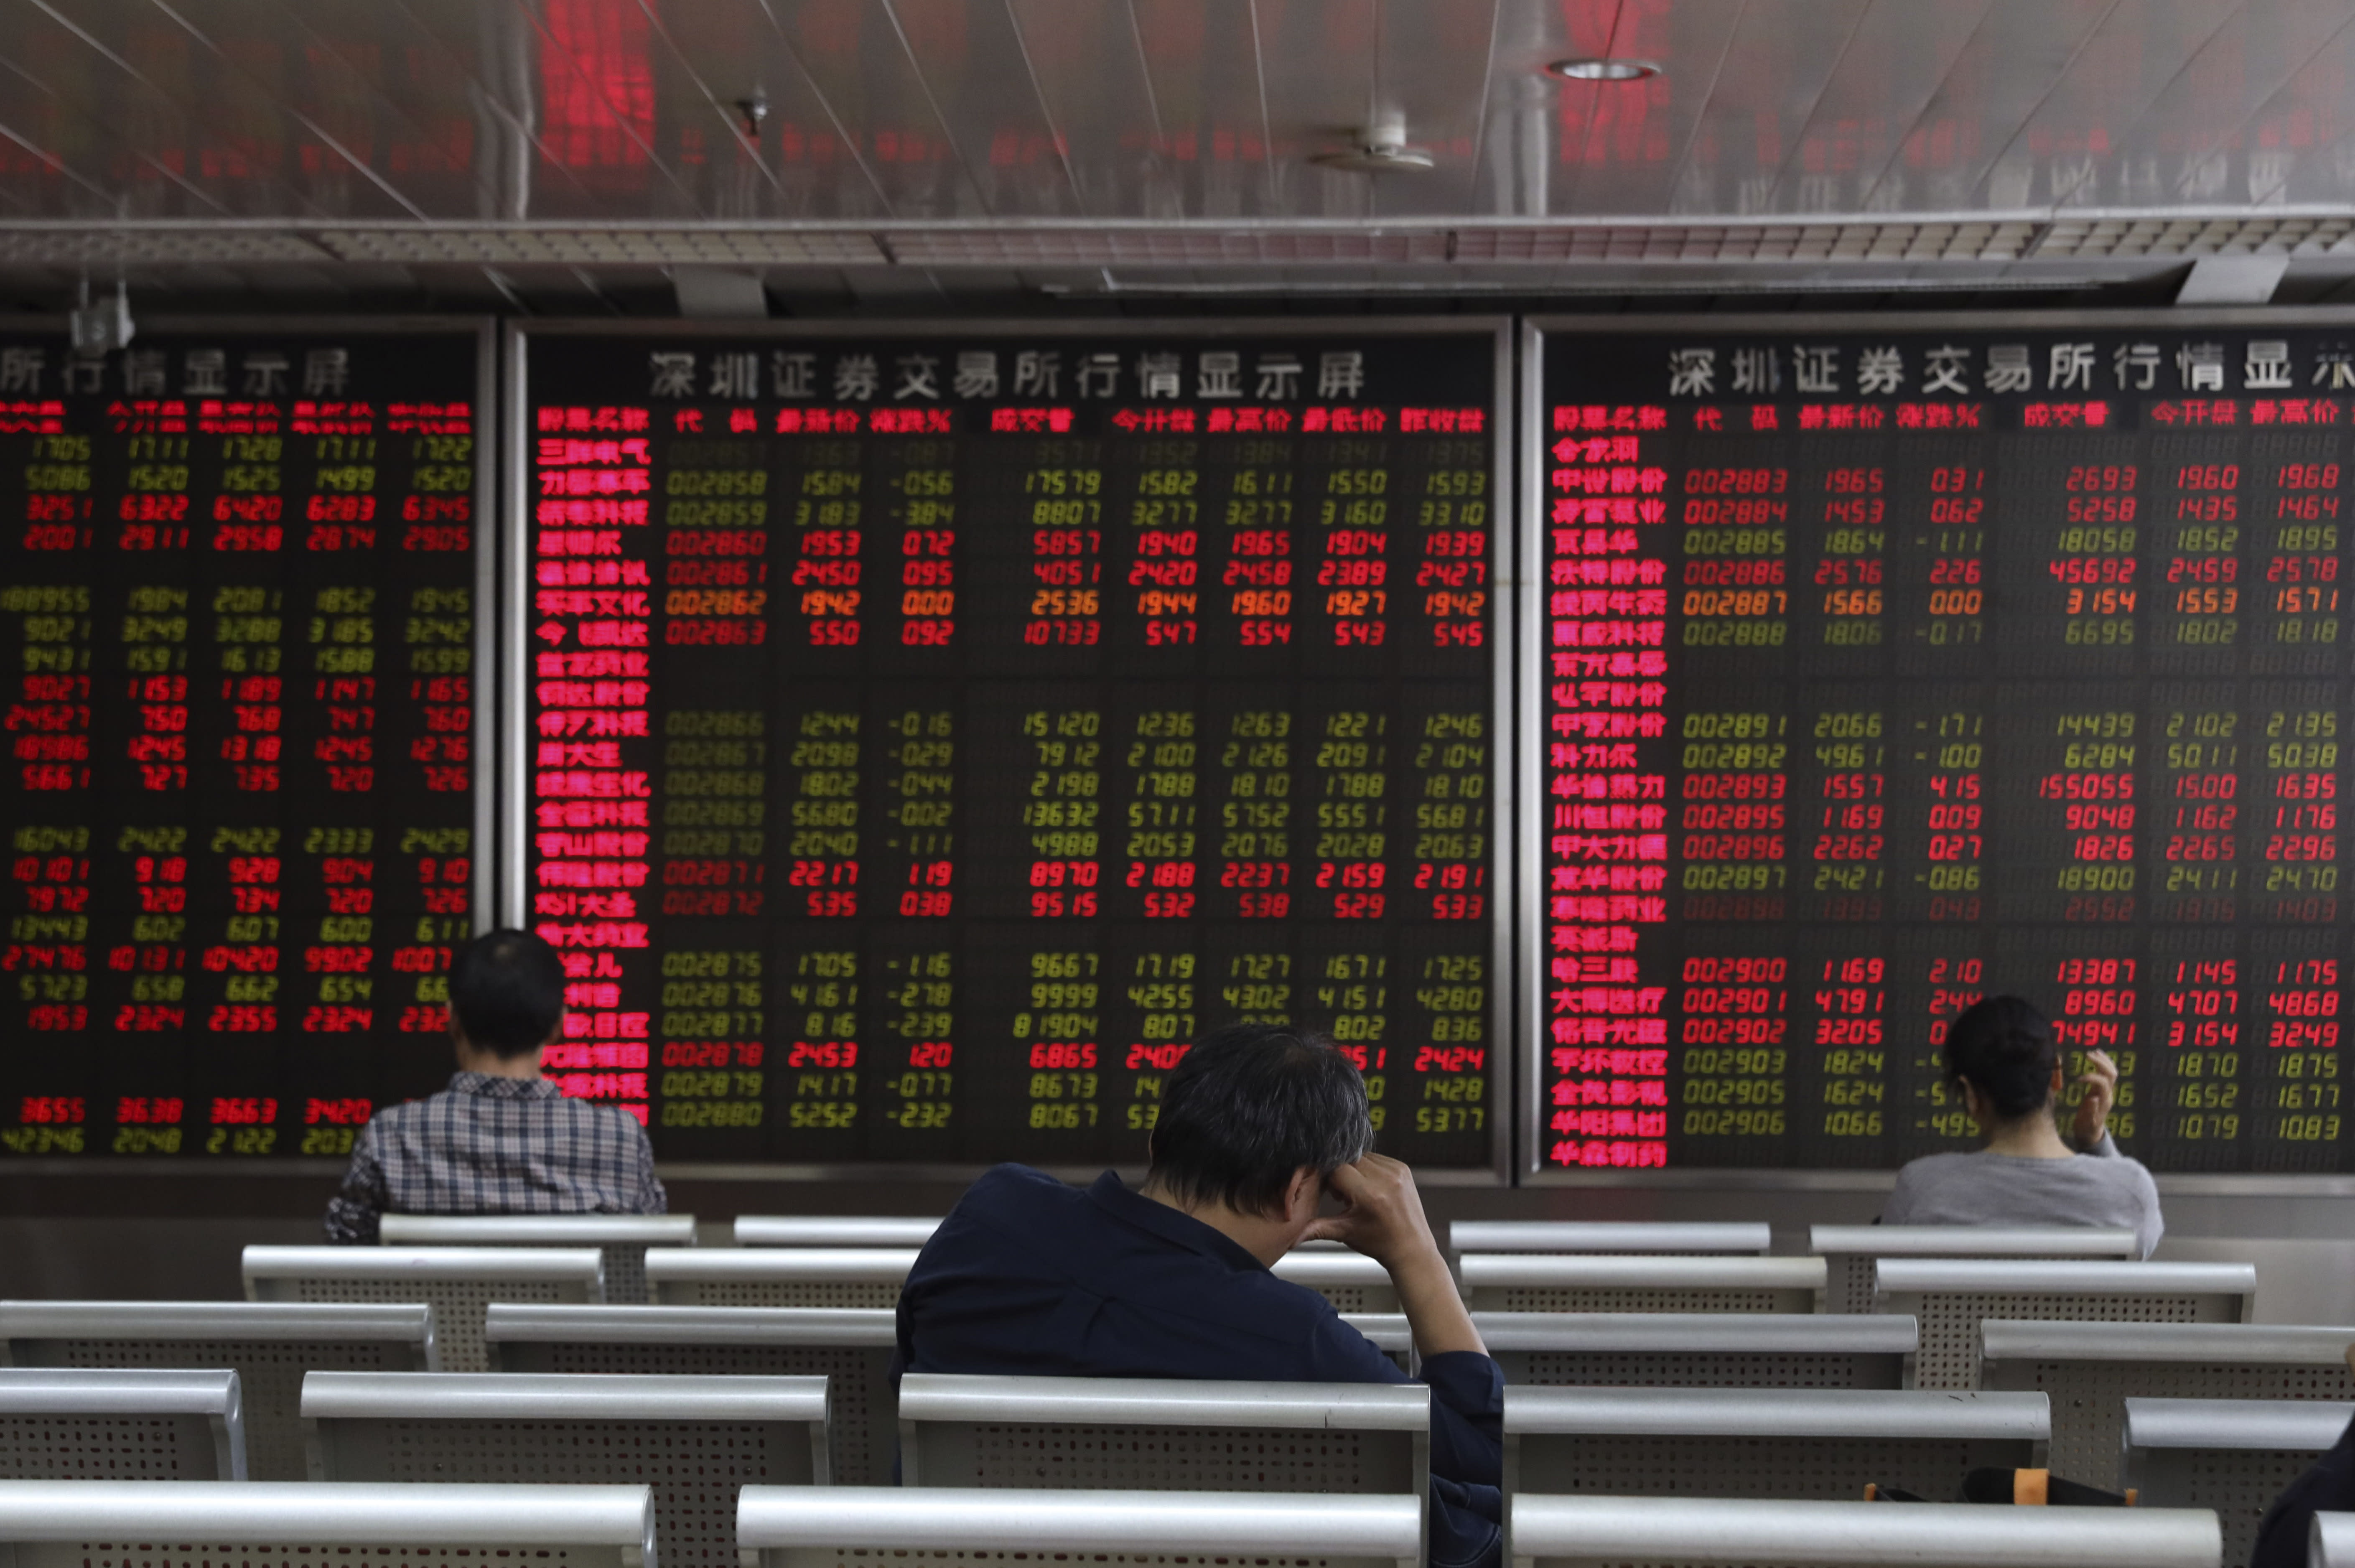 Investors monitor stock prices at a brokerage in Beijing on Wednesday, Oct. 9, 2019. Shares slipped in Asia on Wednesday as tensions between the U.S. and China flared ahead of talks aimed at resolving the trade war between the world's two biggest economies. (AP Photo/Ng Han Guan)